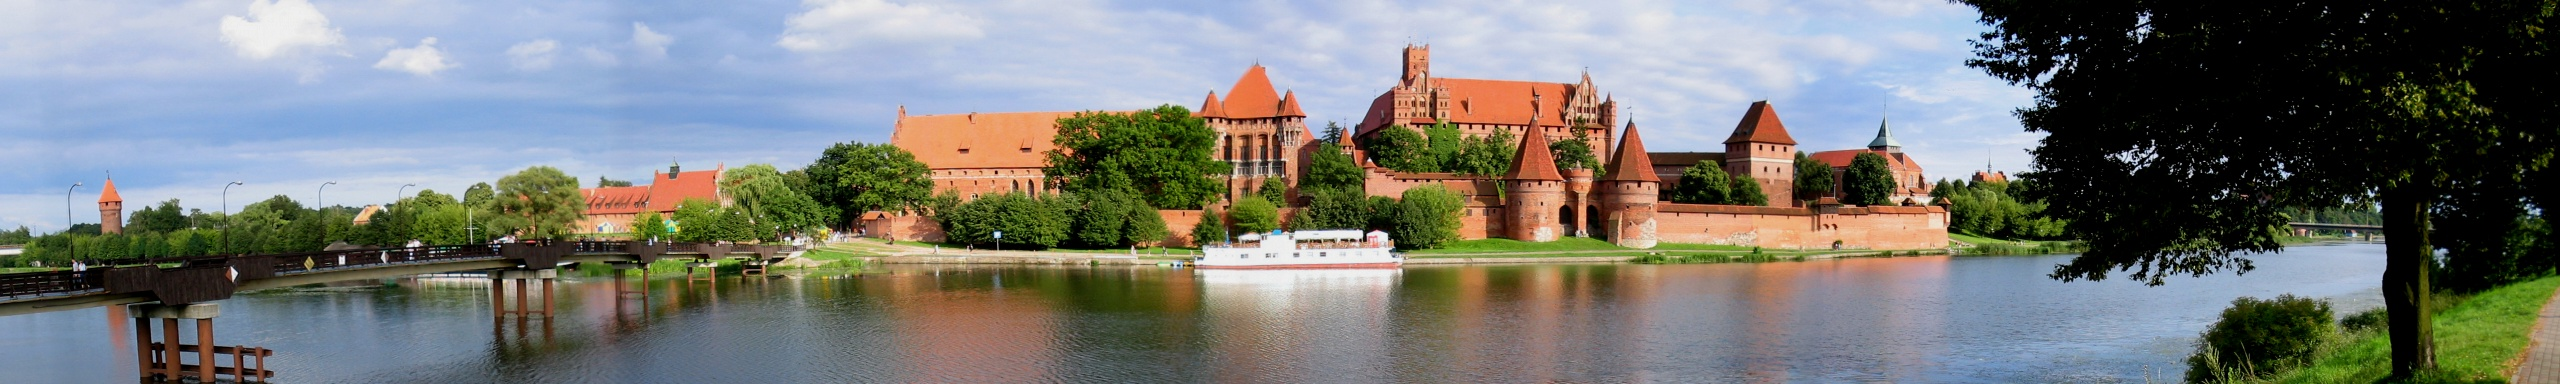 Panorama of a grand castle of red brick on a riverbank